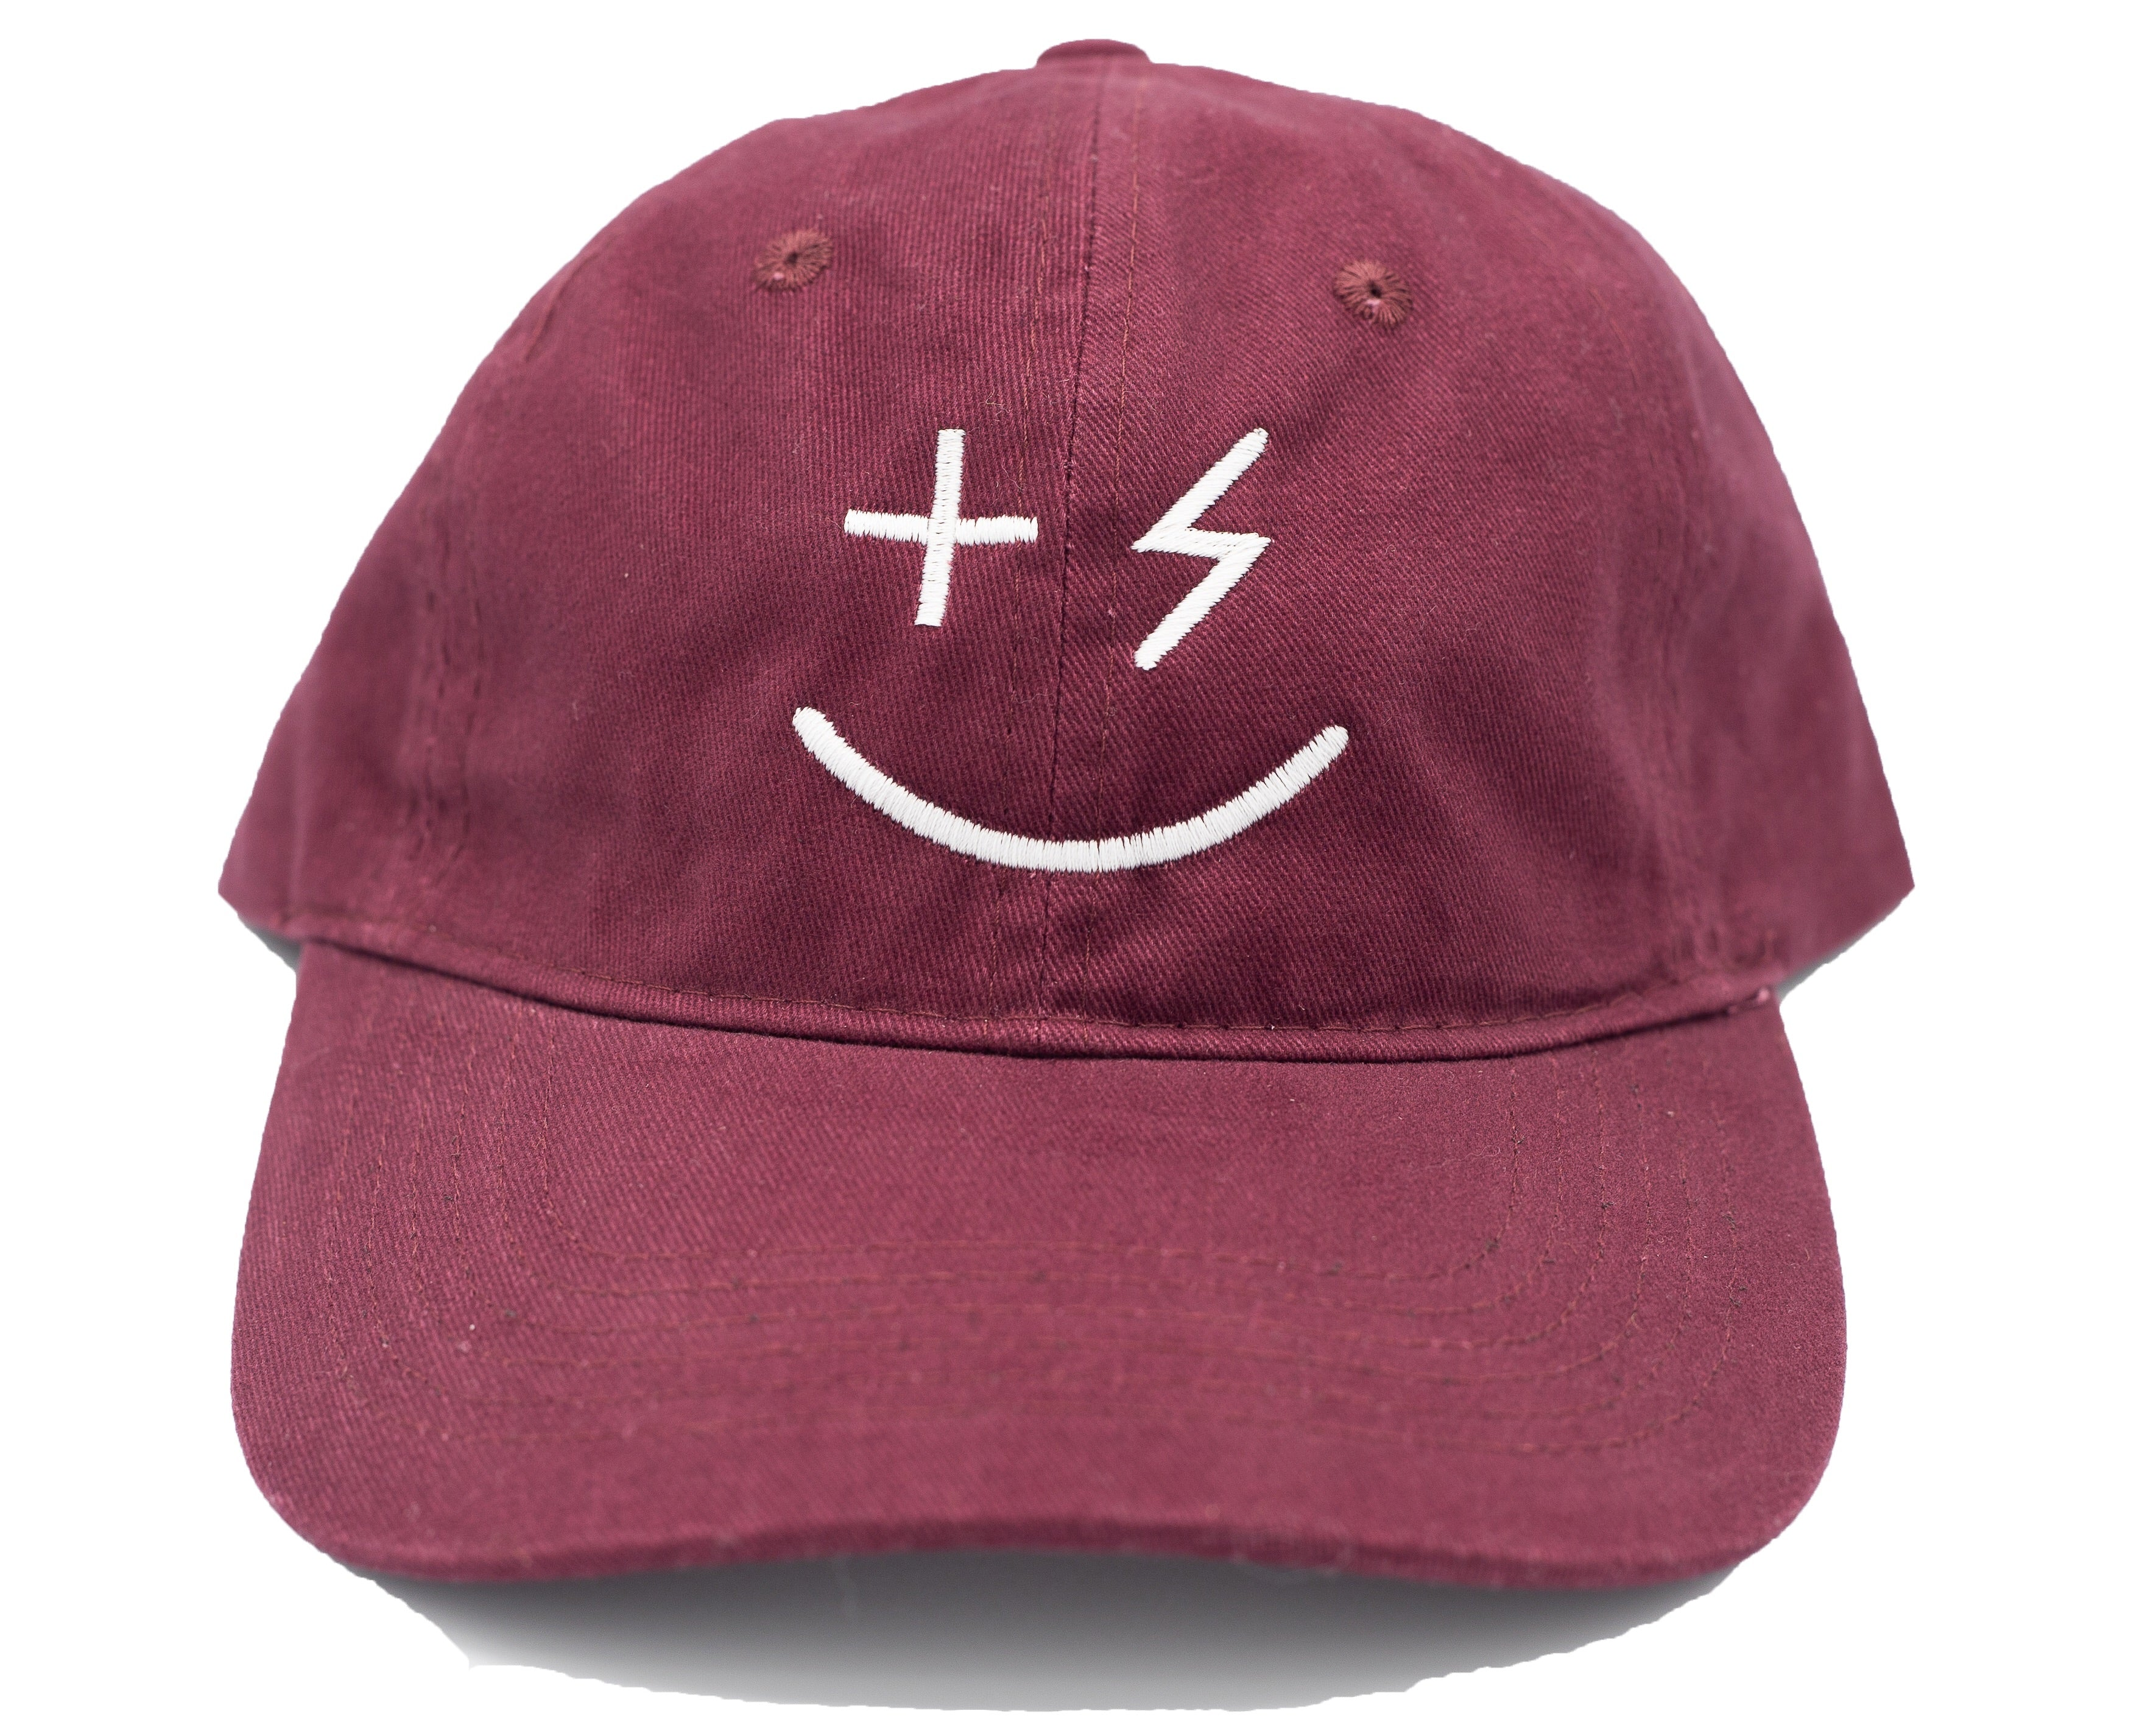 PPP Smiley Cap- Maroon - +Positive People Posse+